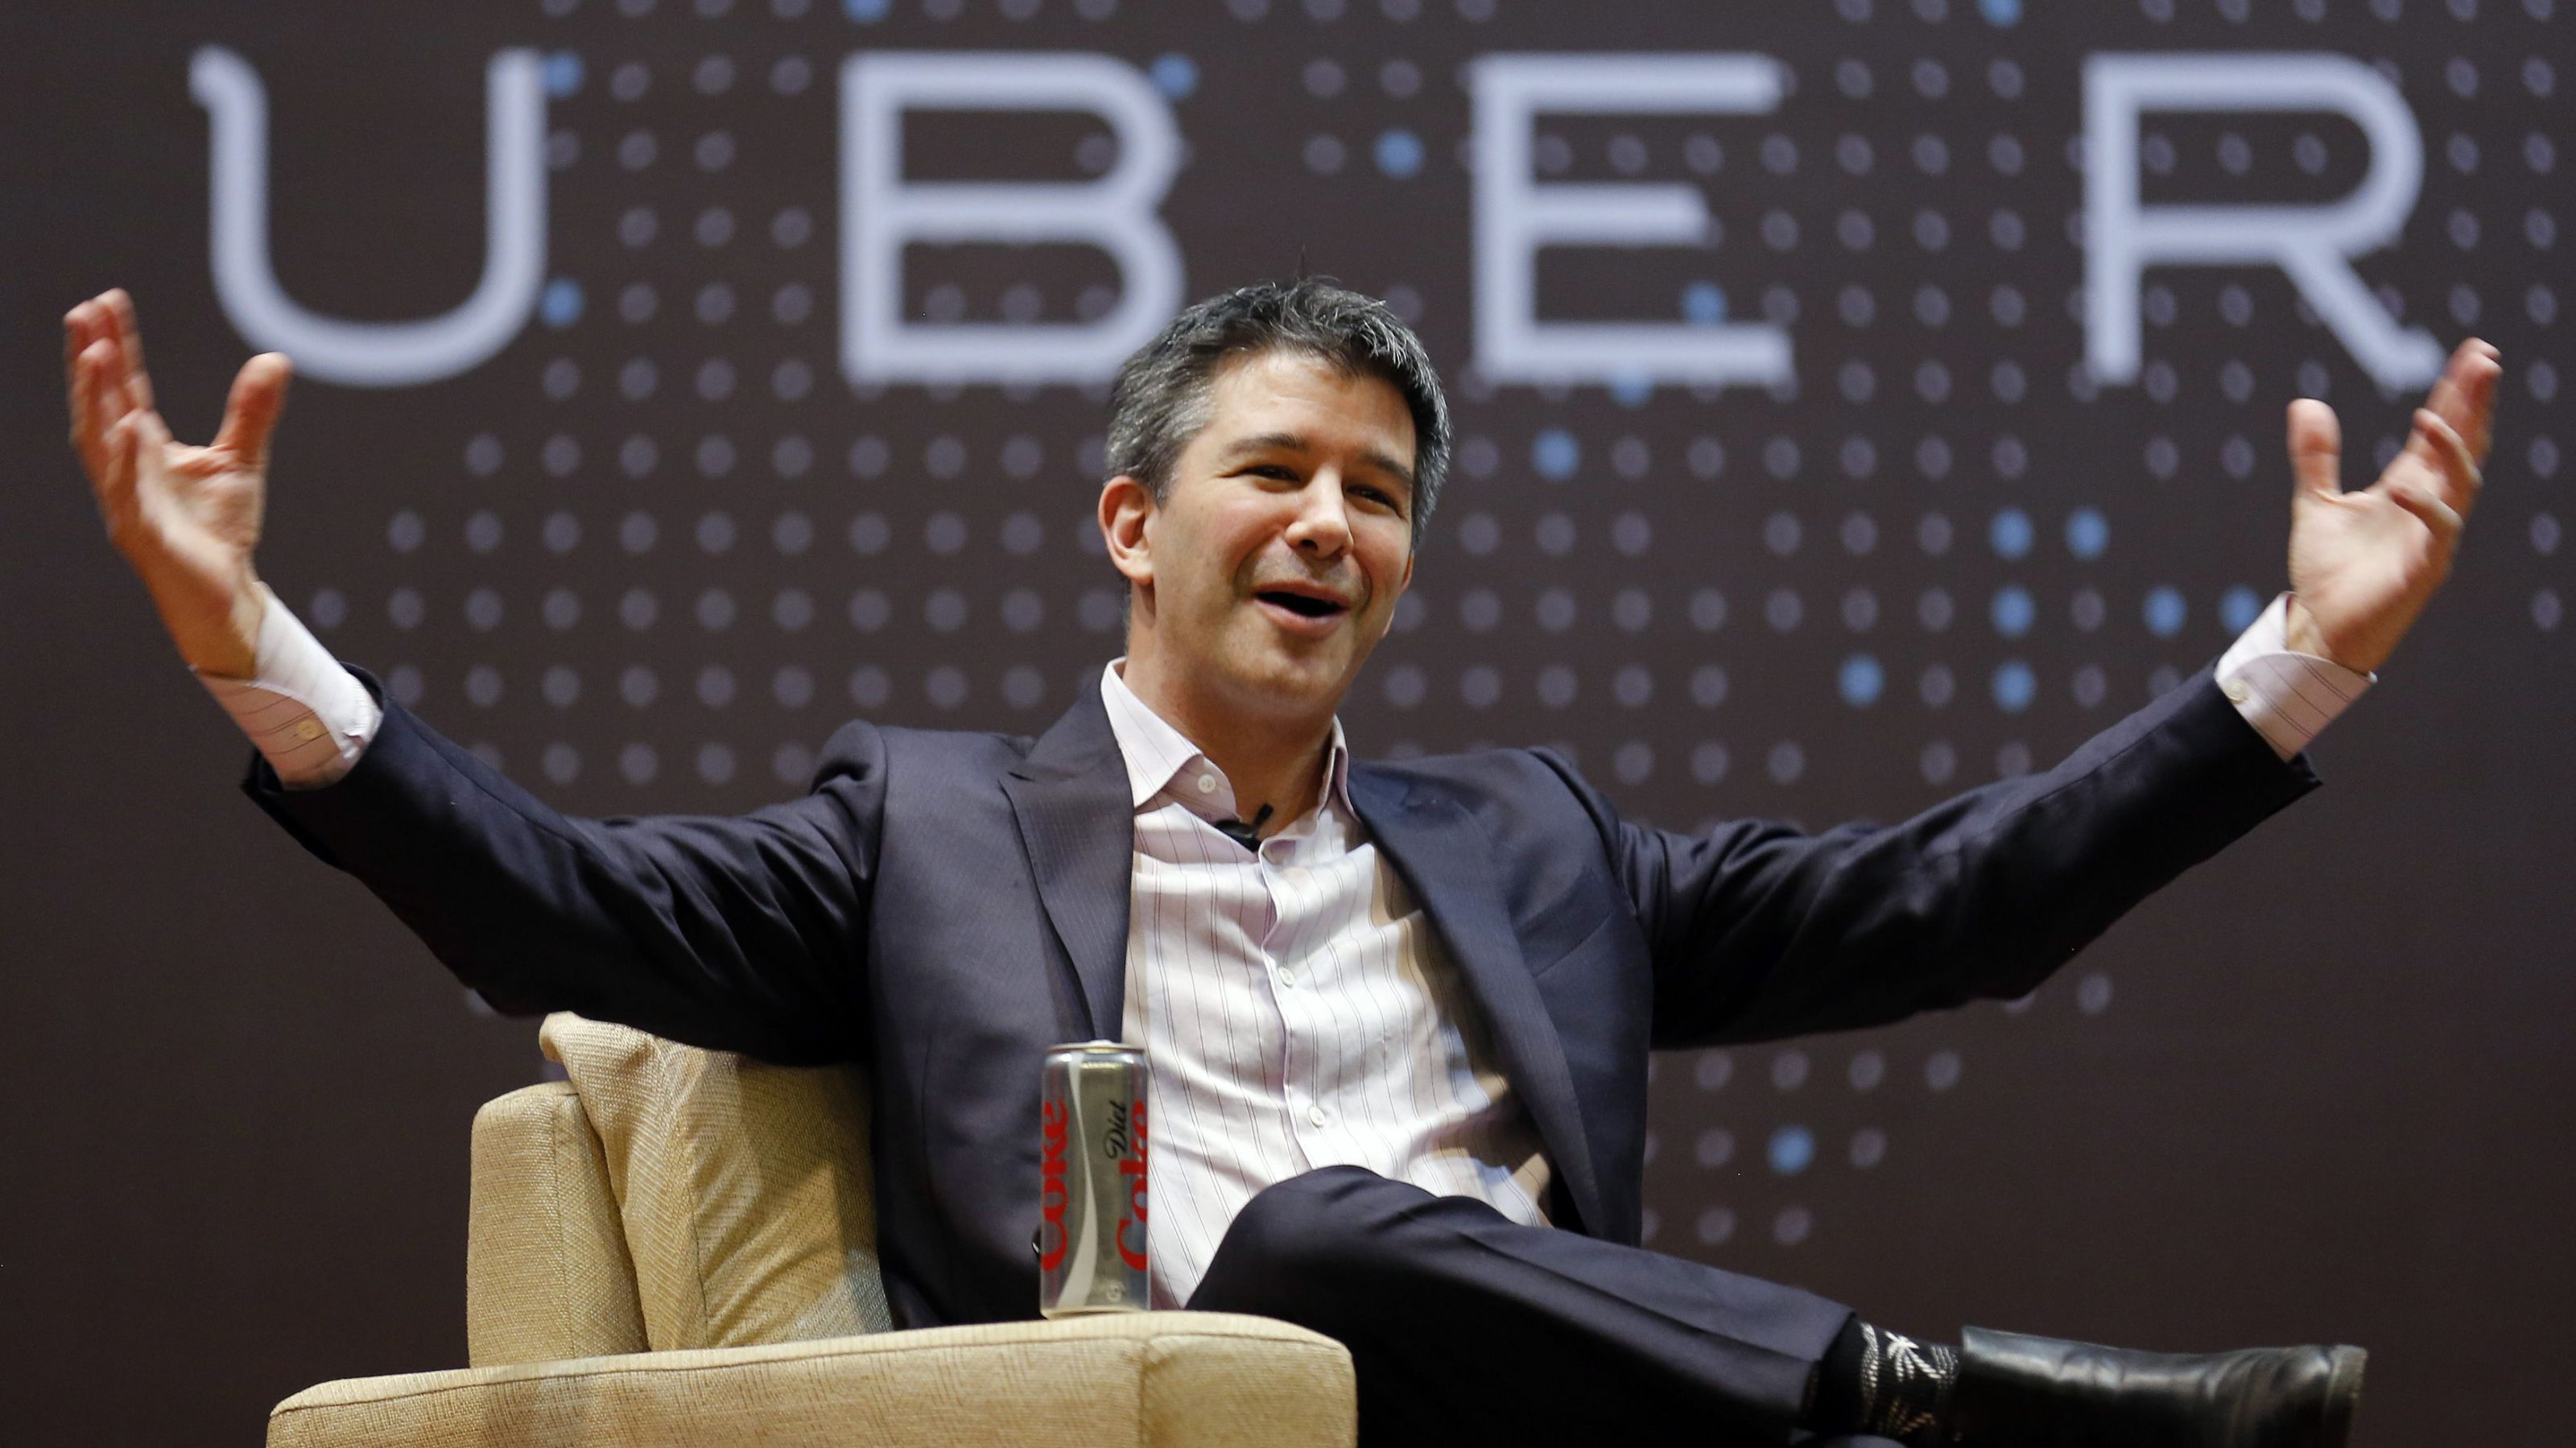 Uber likely isn't the world's most valuable startup anymore